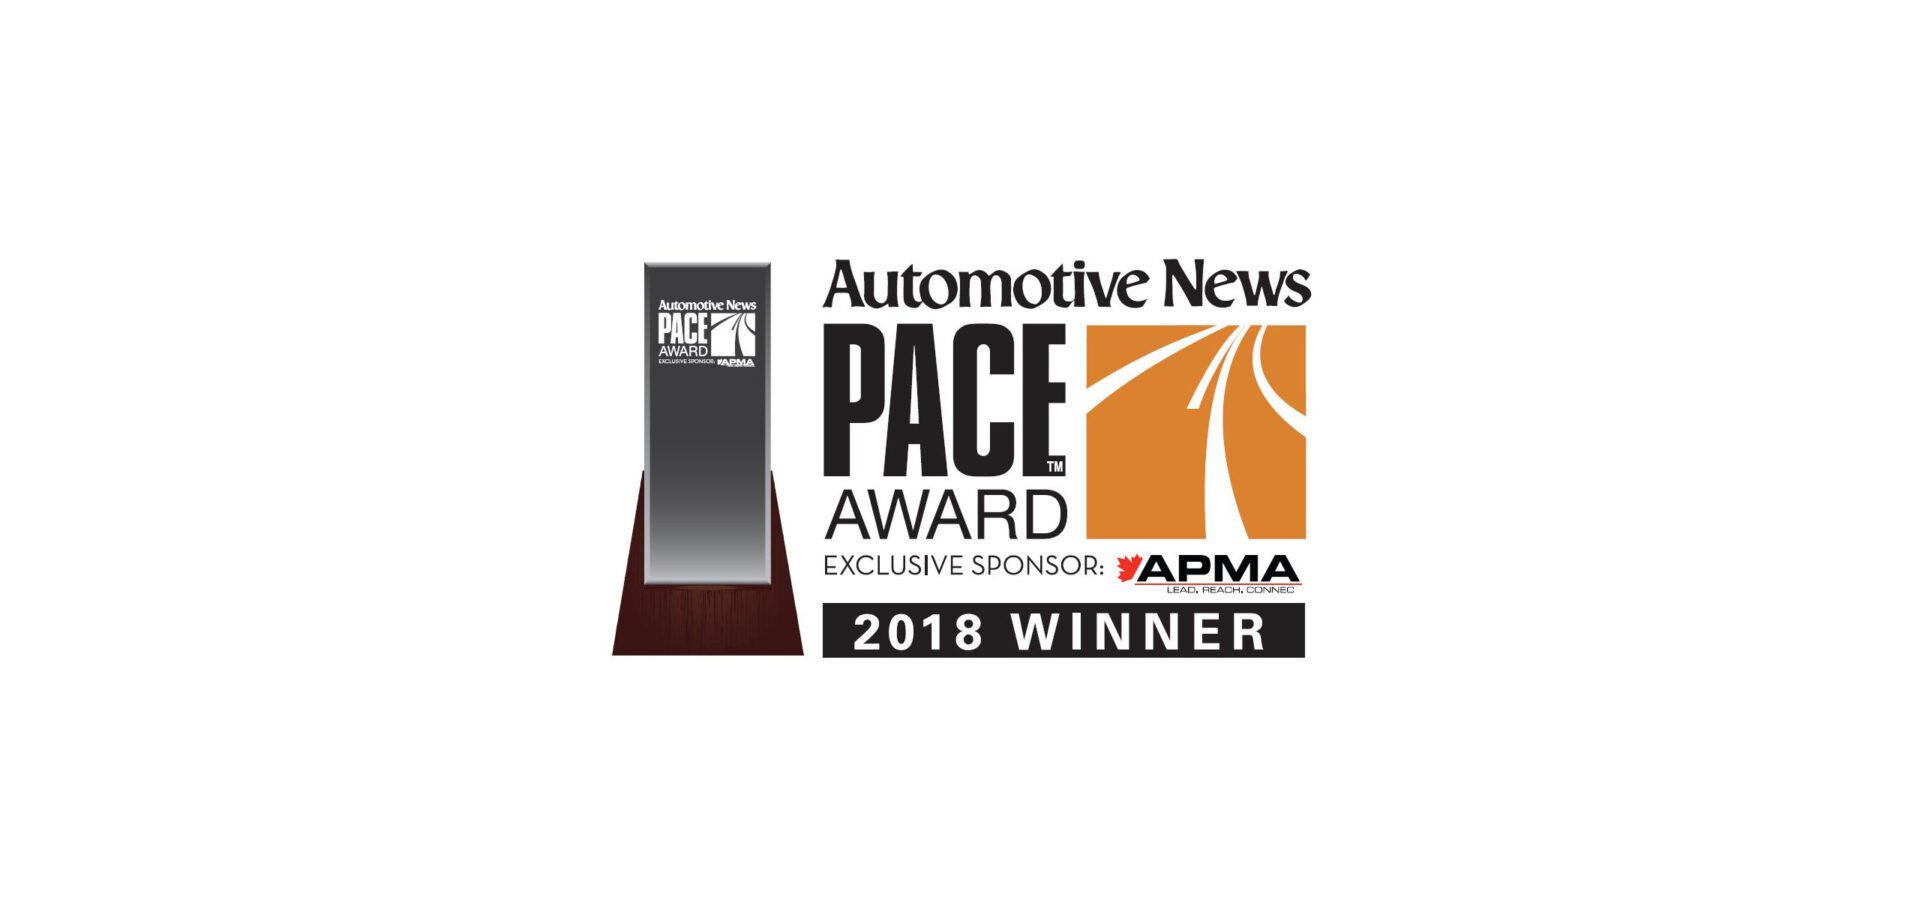 SKF – лауреат премии Automotive Award 2018